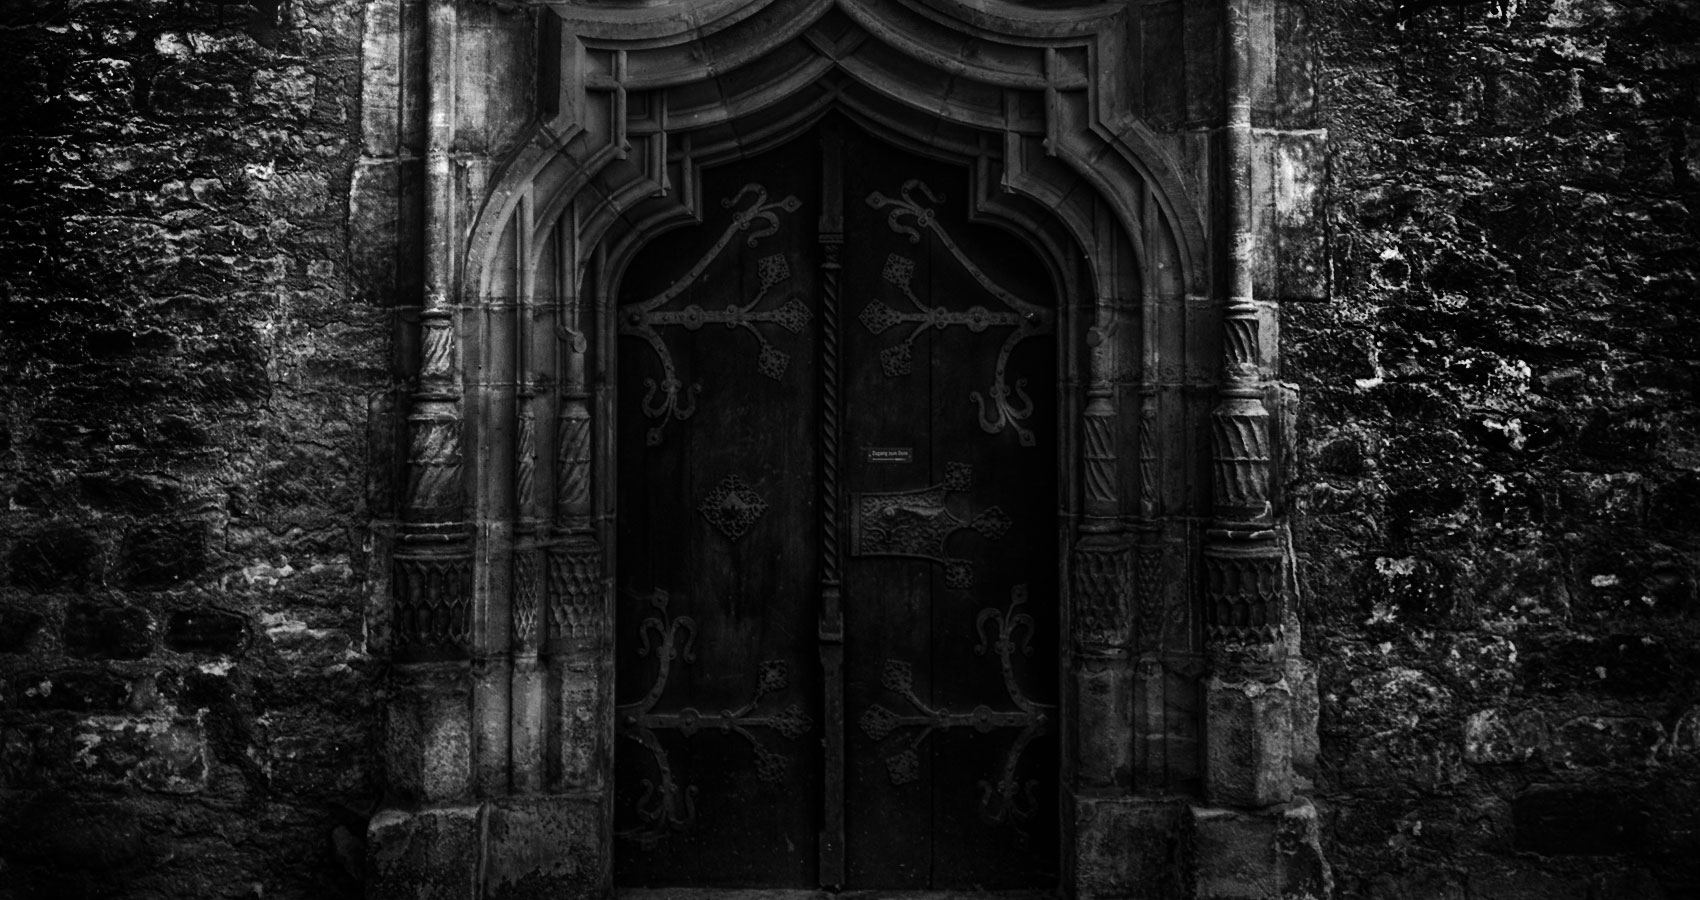 The Door and The Darkness, poetry by Luiz Syphre at Spillwords.com